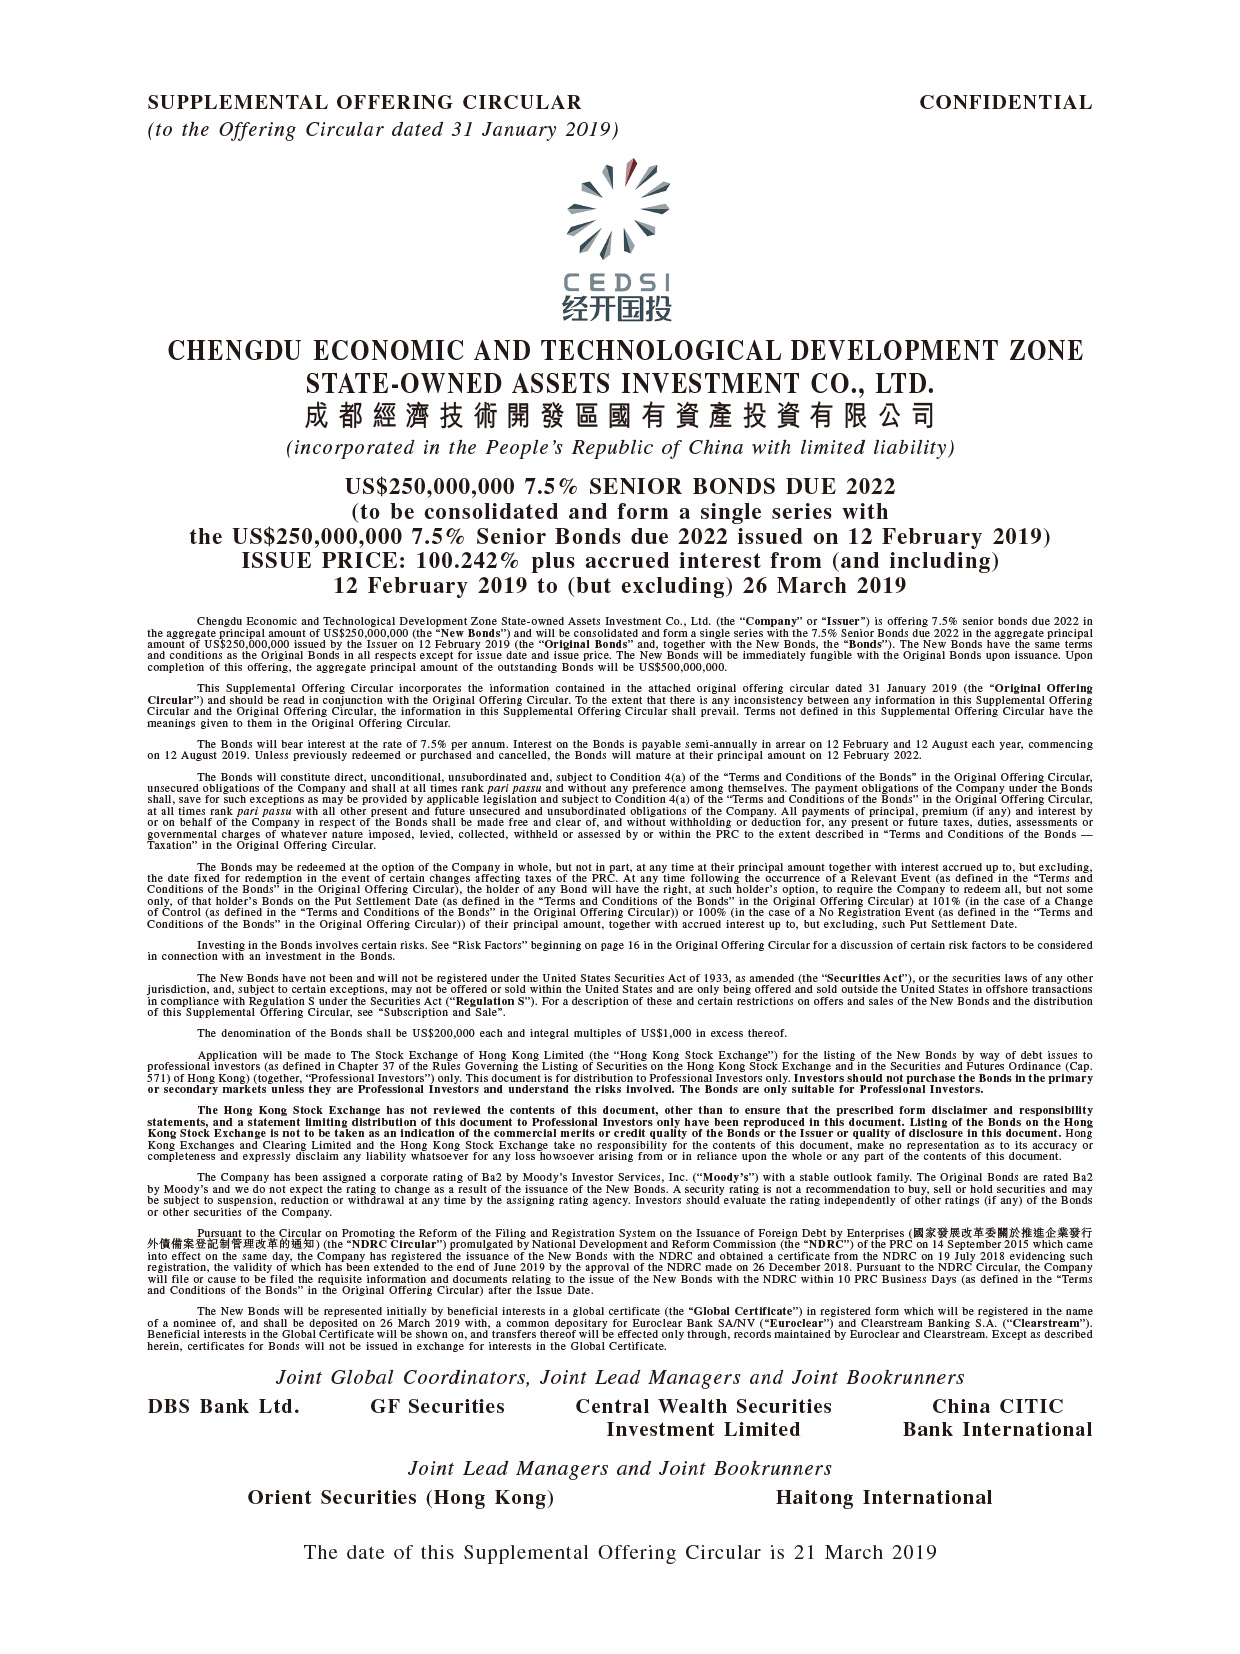 CHENGDU ECONOMIC AND TECHNOLOGICAL DEVELOPMENT ZONE STATE-OWNED ASSETS INVESTMENT CO., LTD.